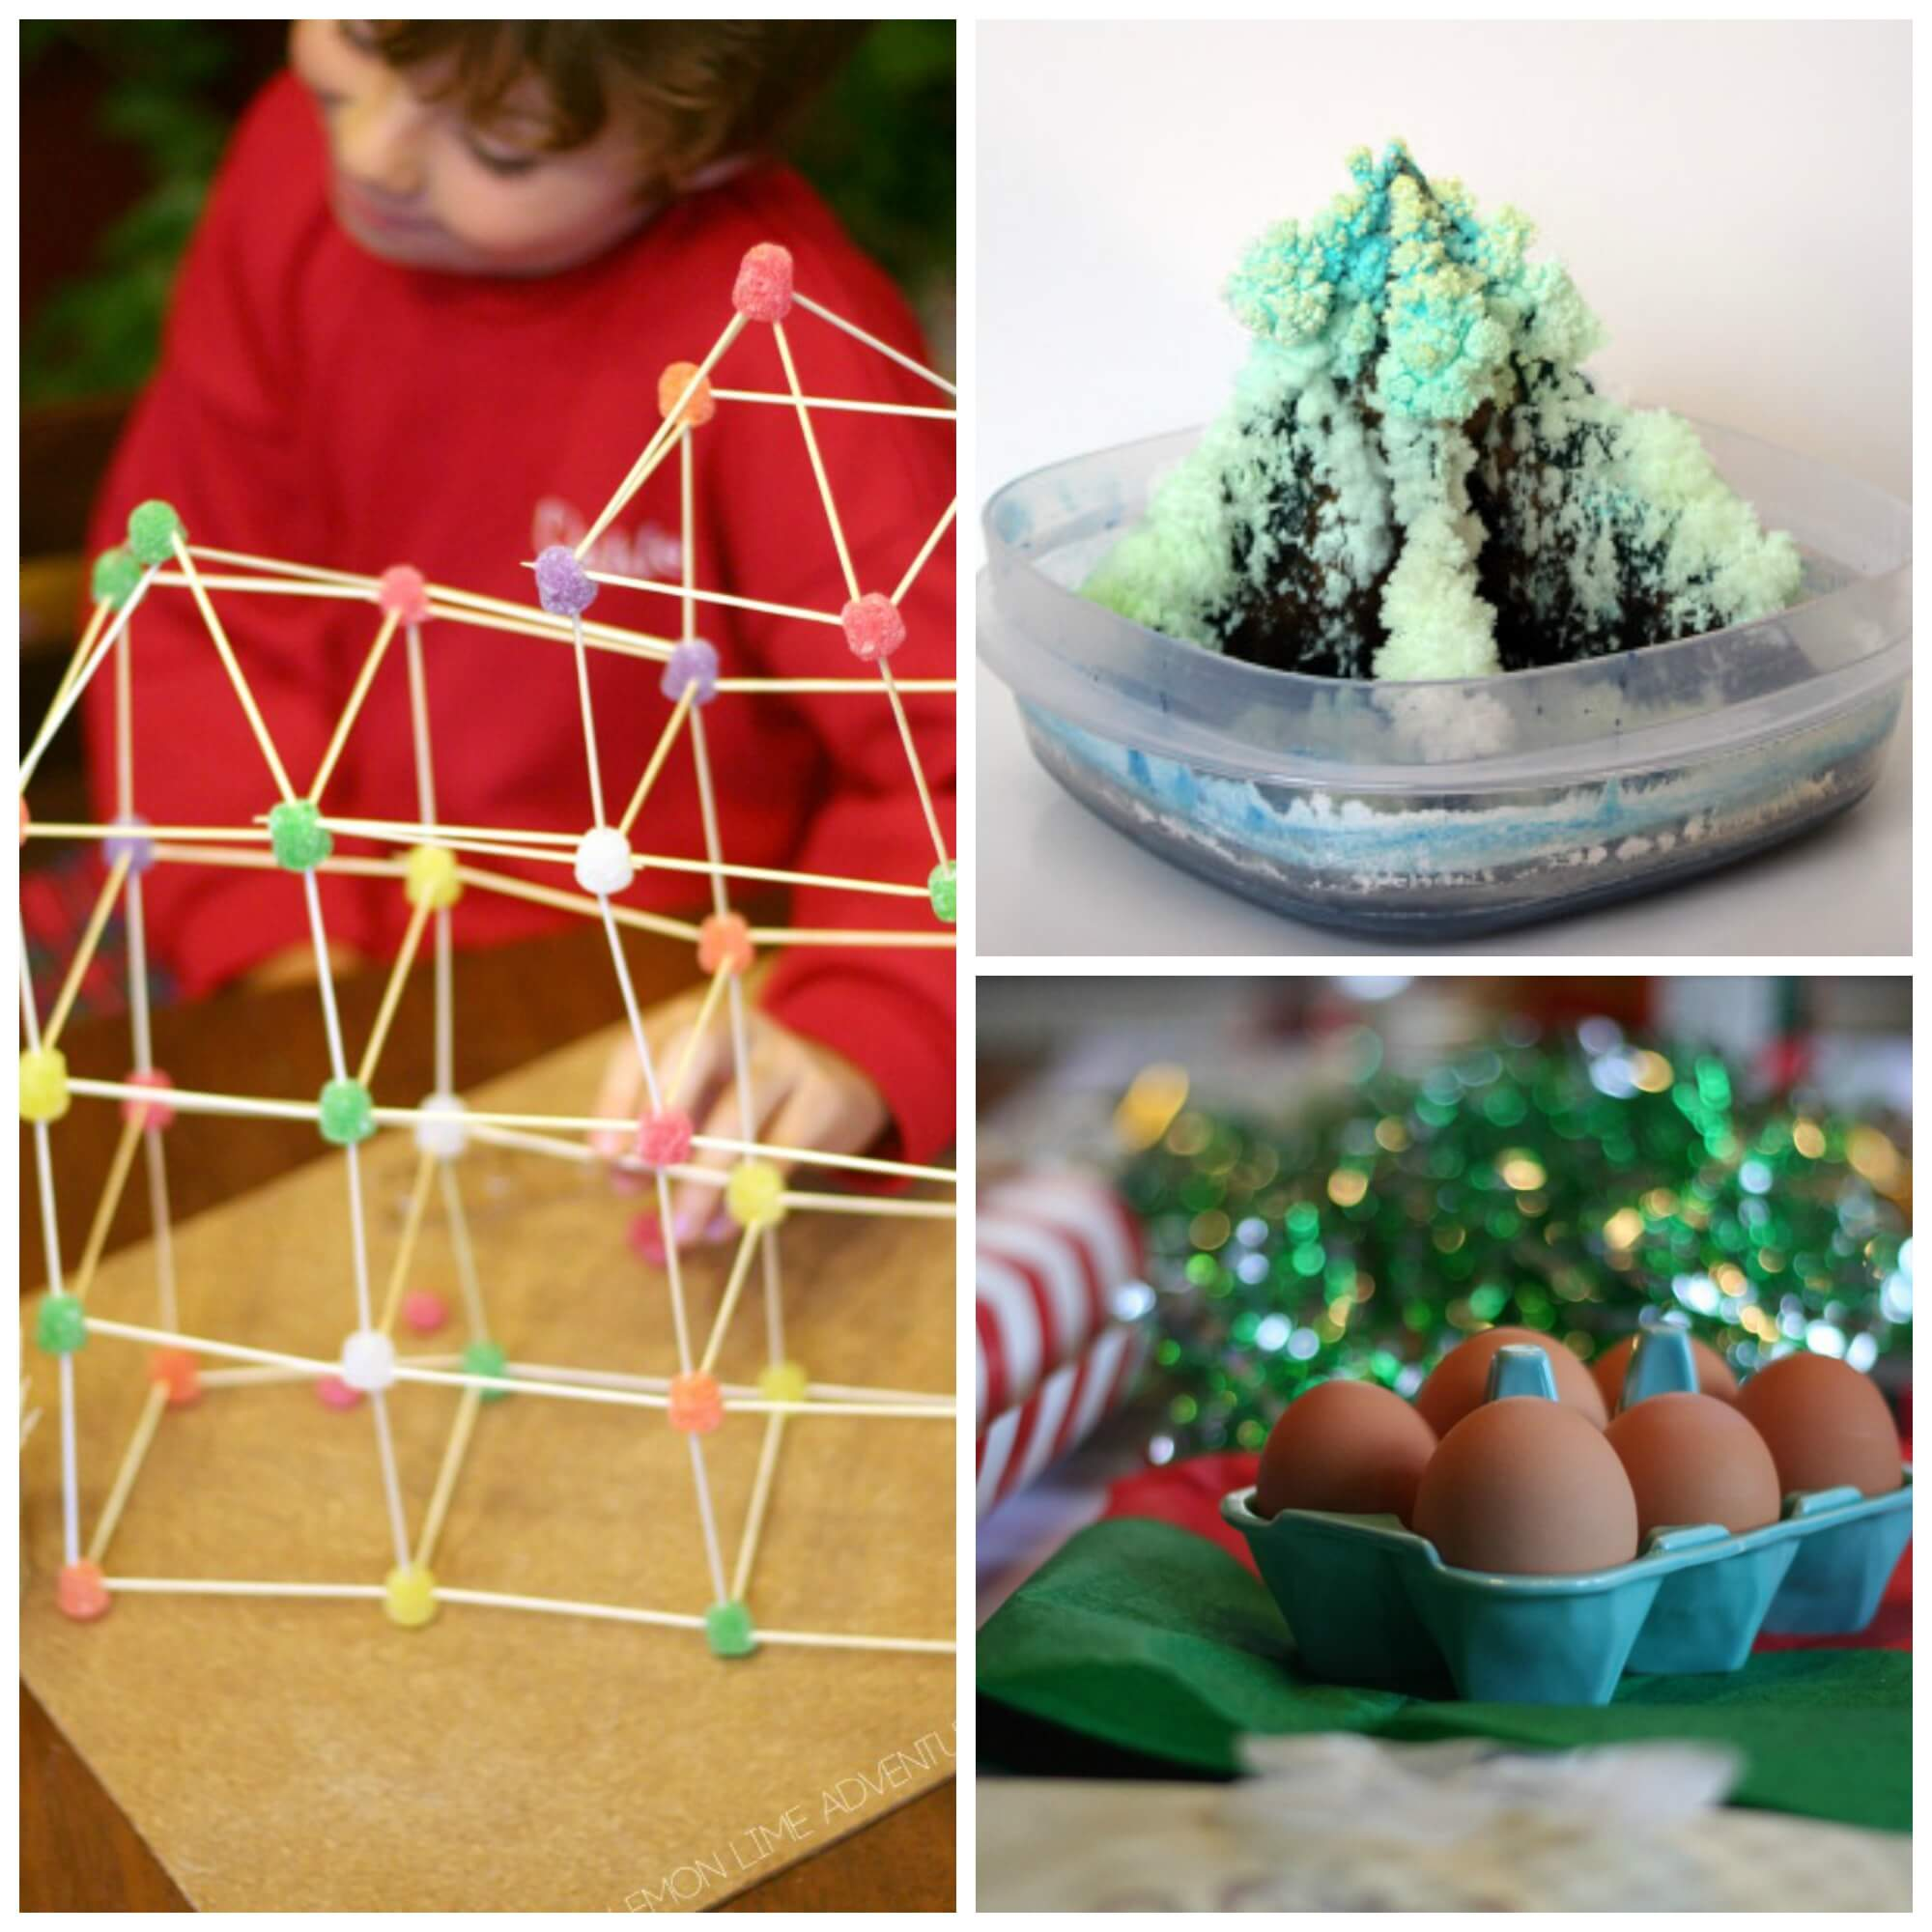 Top 10 Must-Try Christmas Science Experiments for Kids